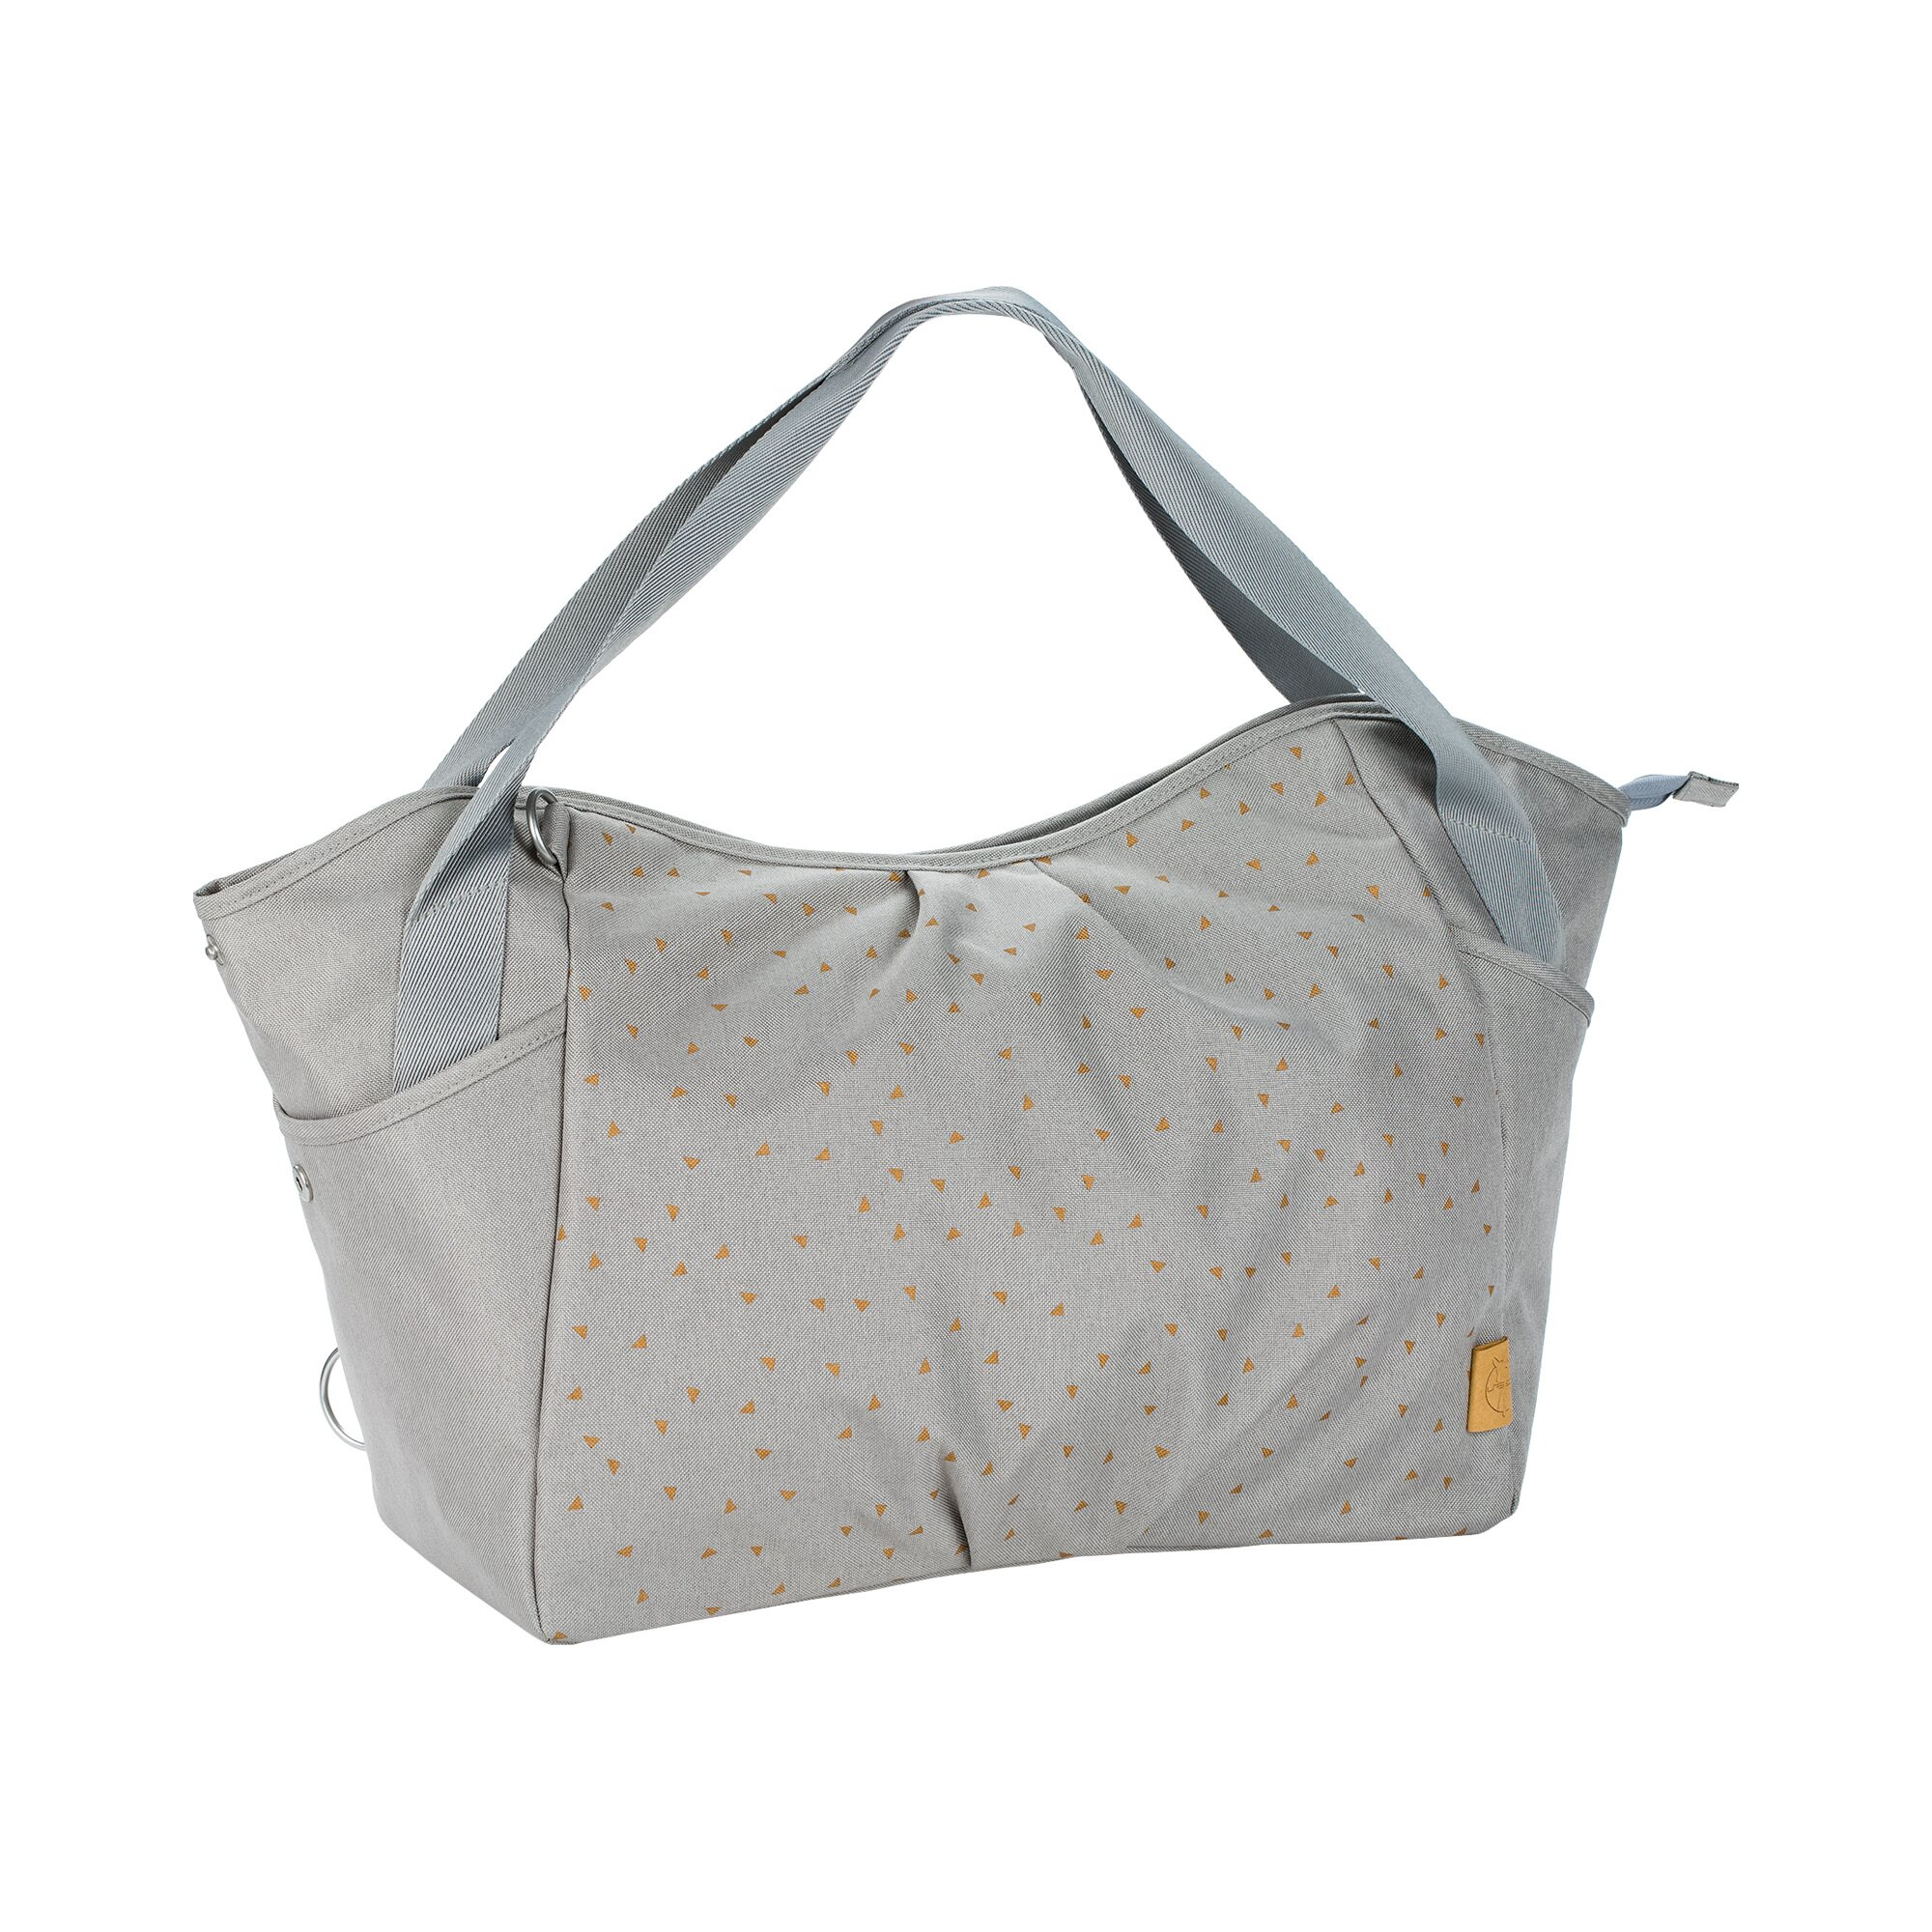 Casual Wickeltasche Twin Bag grau